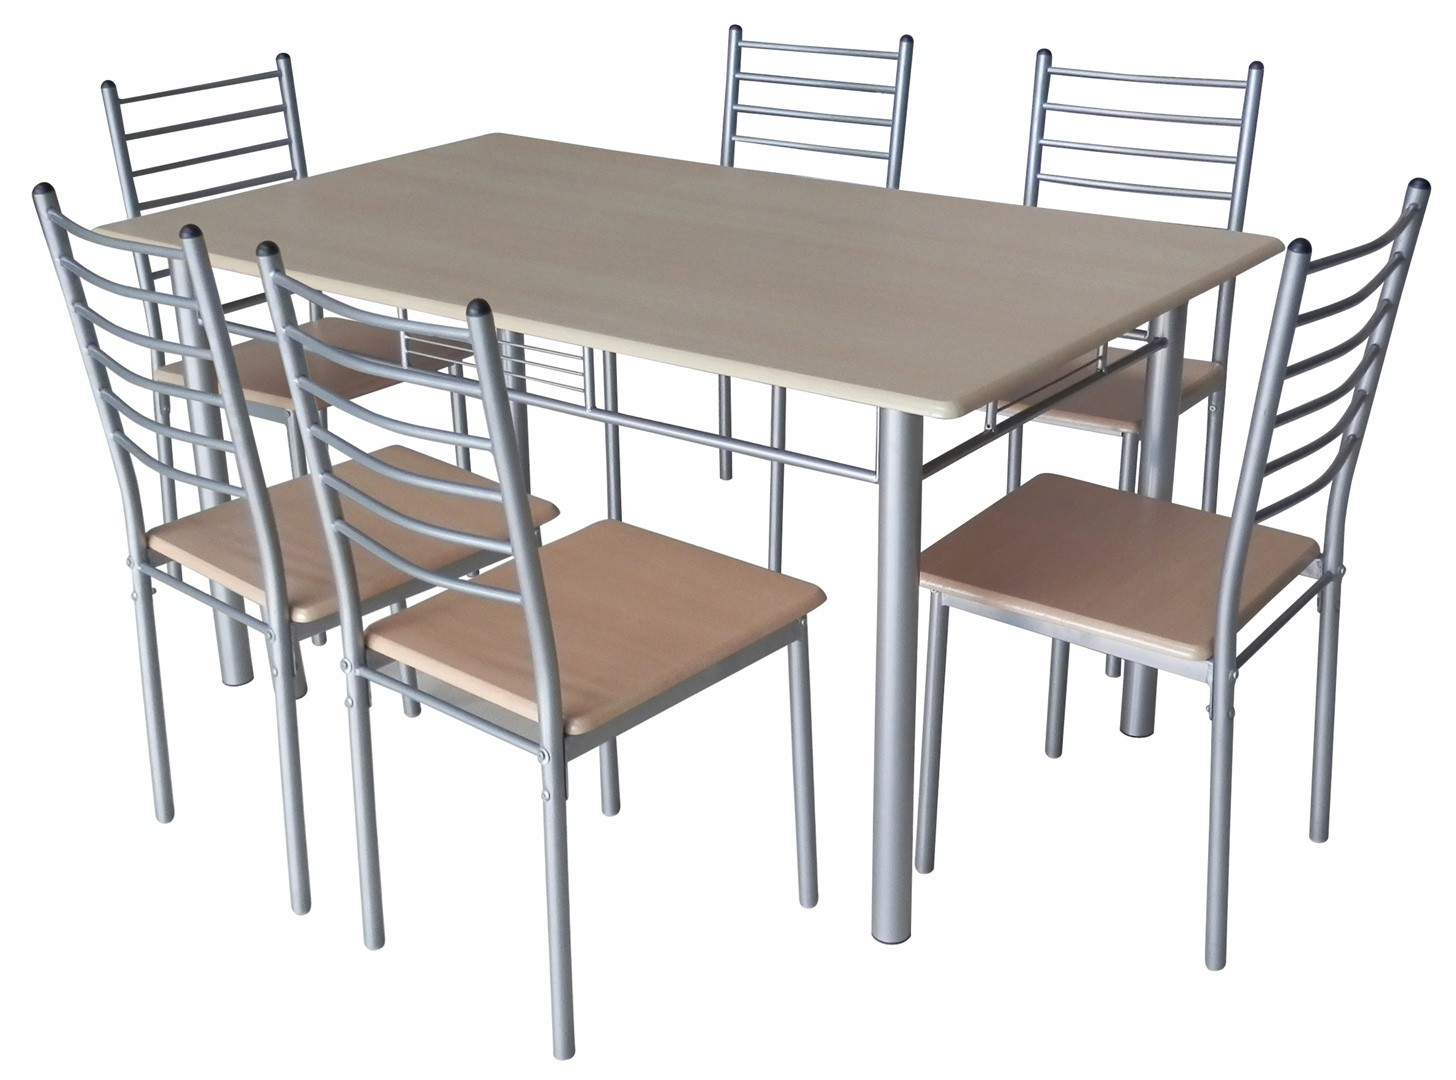 Ensemble table et chaises de cuisine but chaise id es de d coration de ma - Table chaise cuisine ...